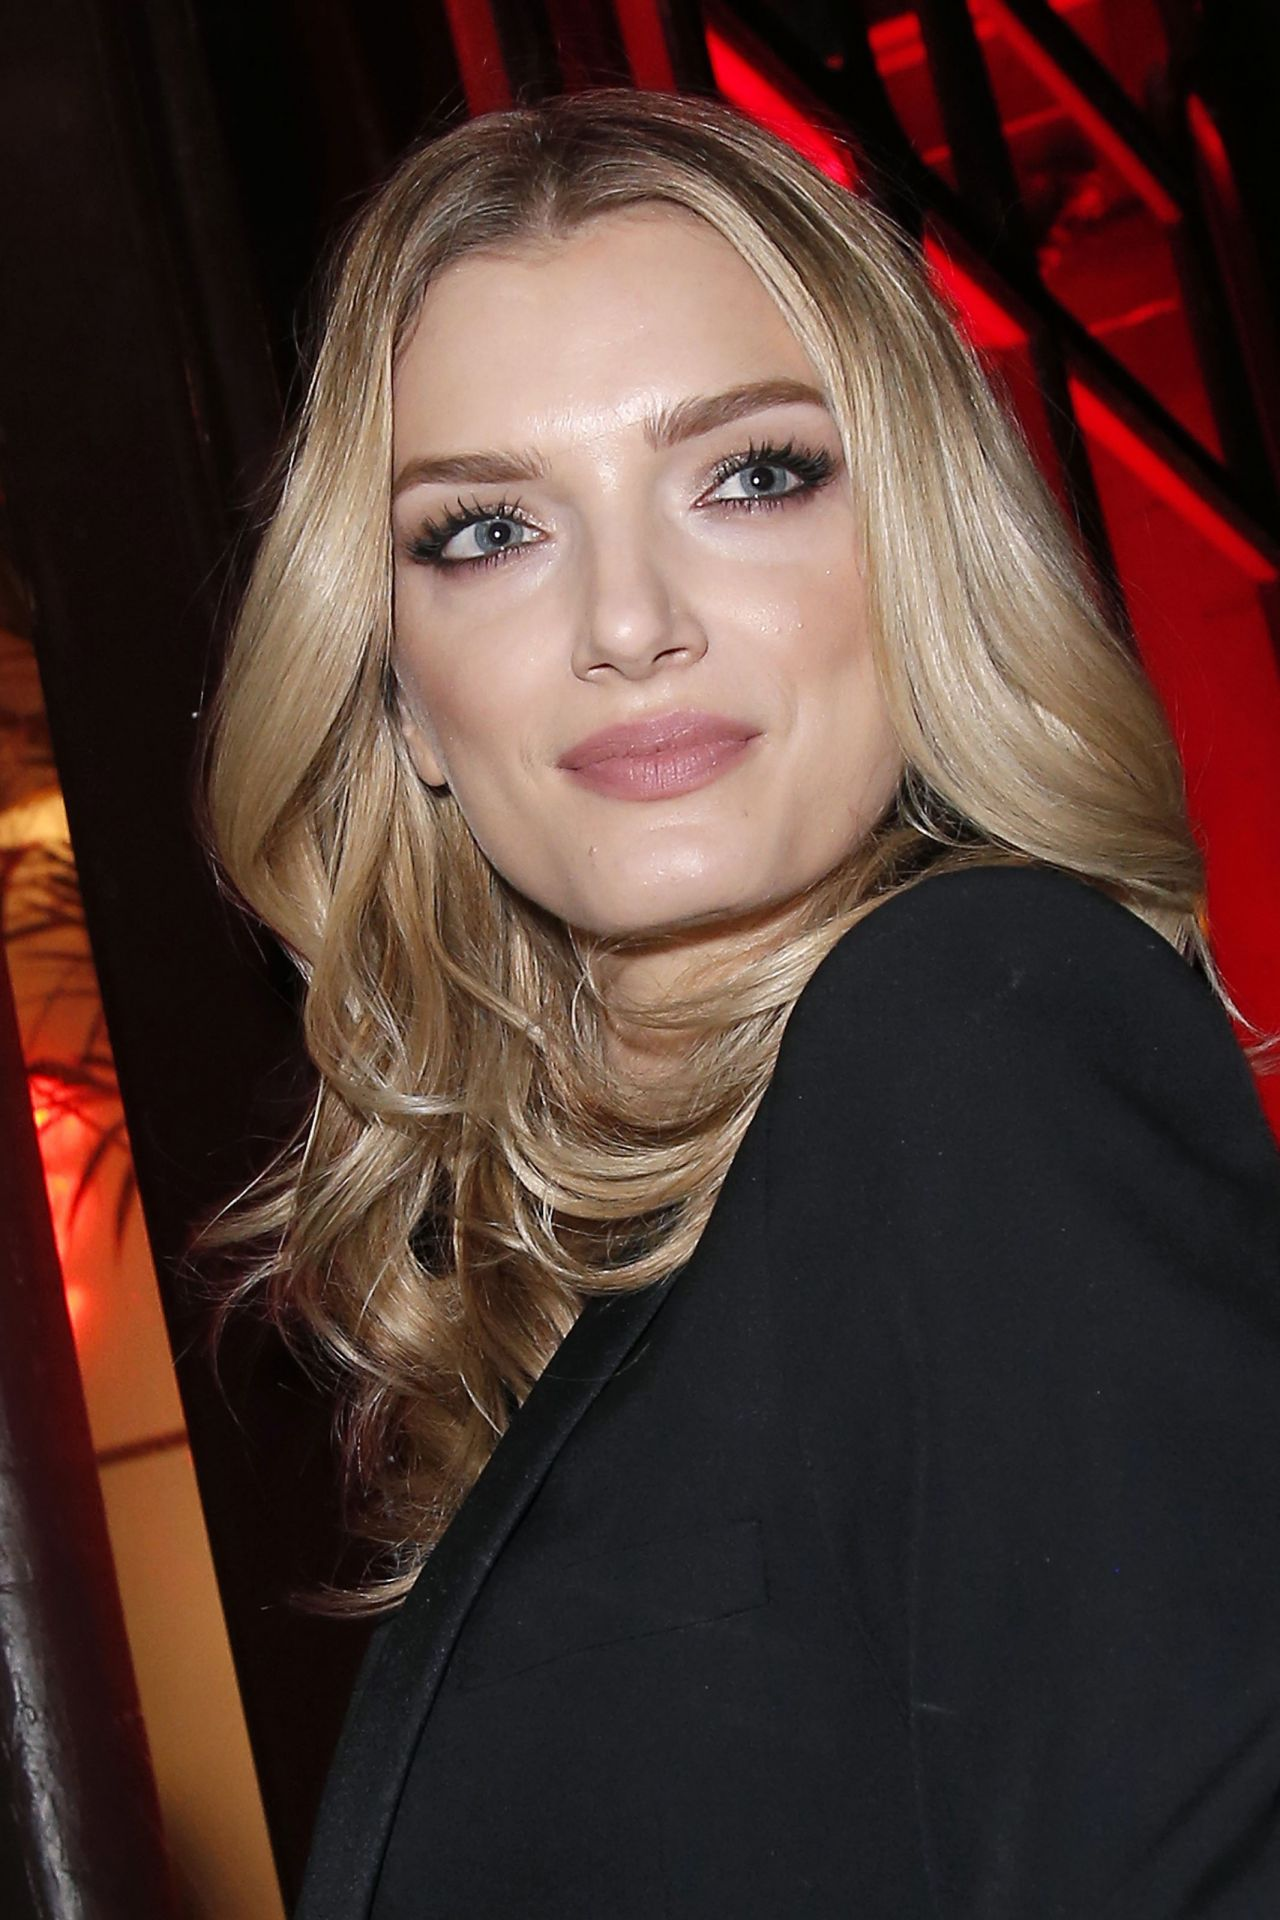 Sweet Model Lily Donaldson - Sweet Model Lily Donaldson